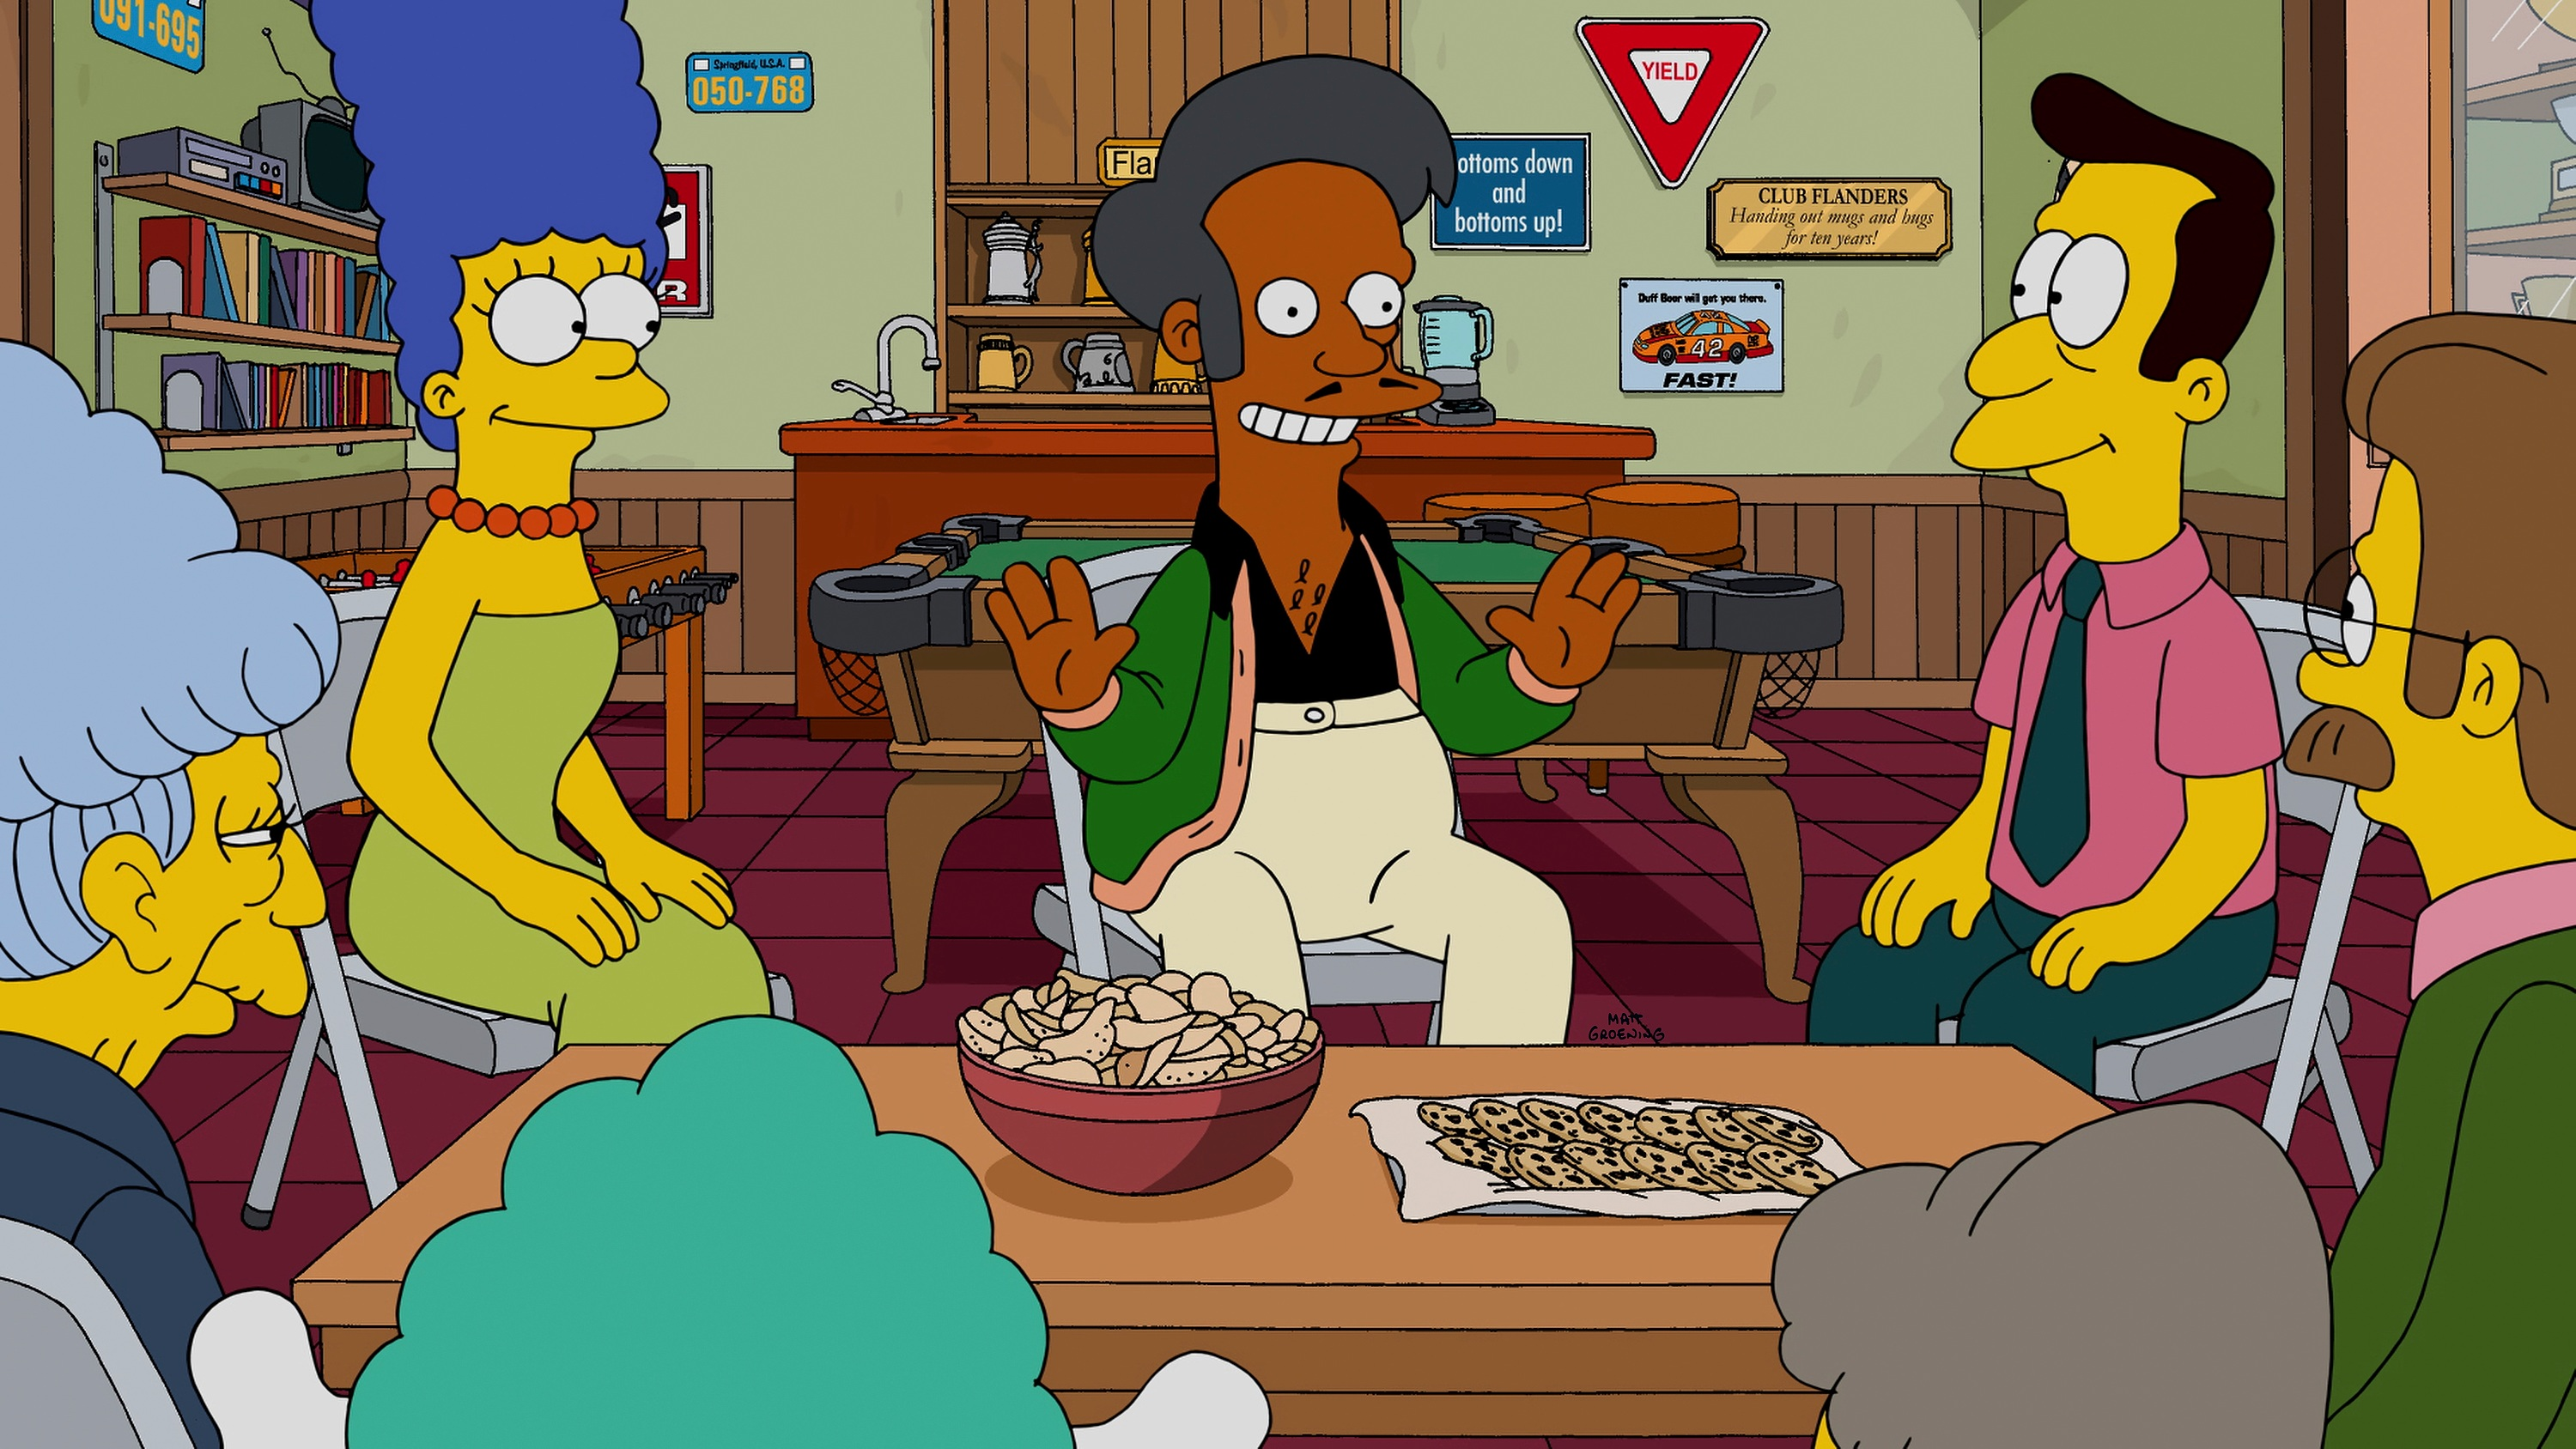 Apu tells Marge's congregation how they can collect enough money to repair their church in the 'Sky Police' episode of The Simpsons.